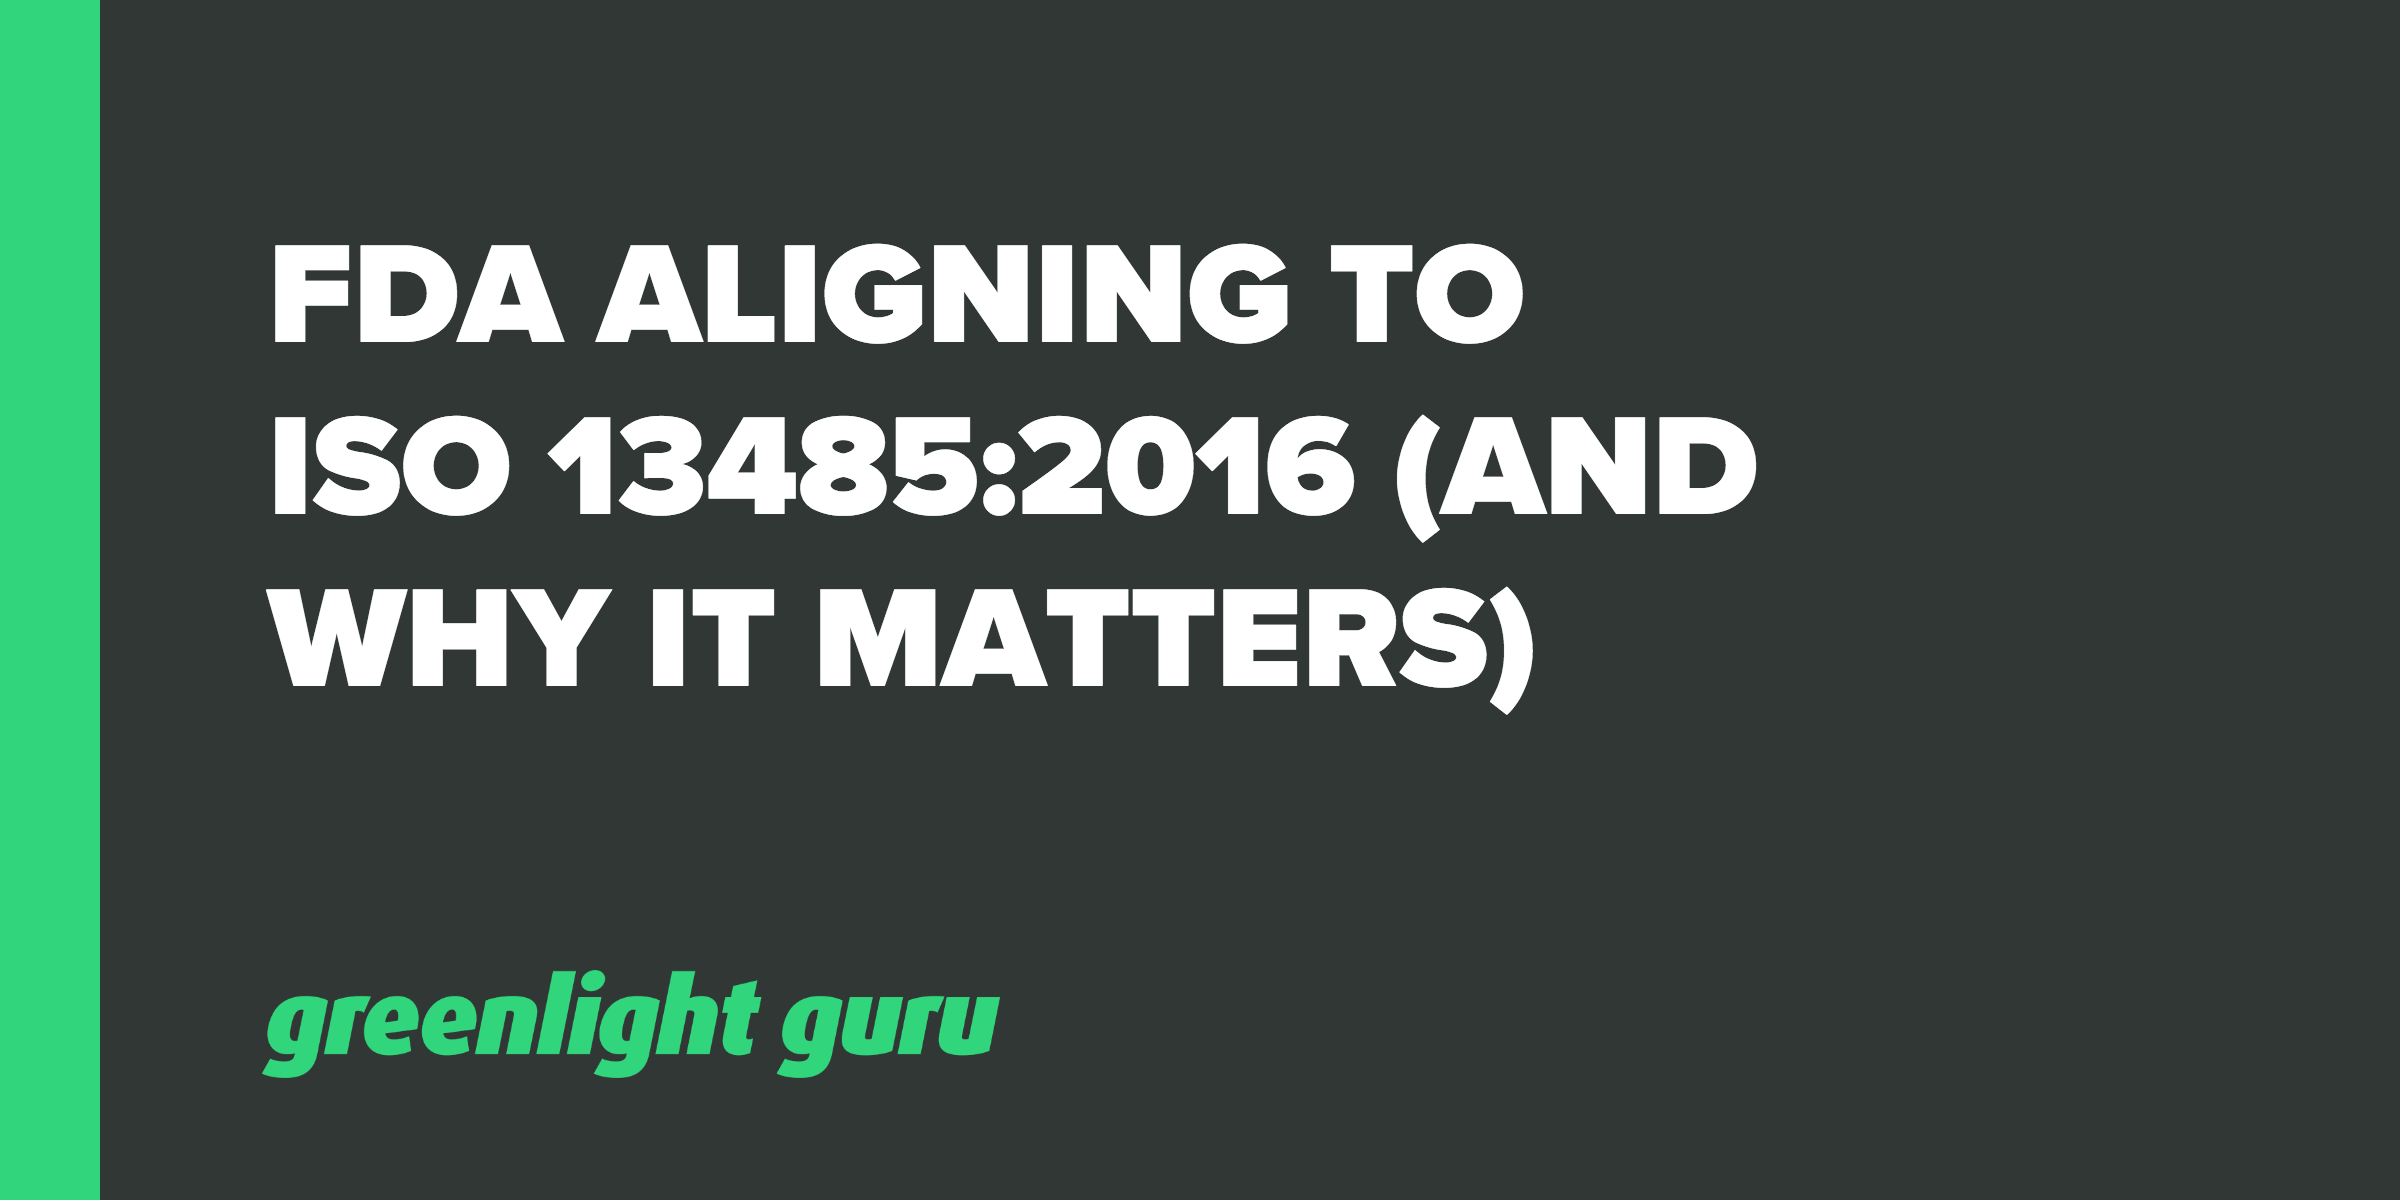 FDA Aligning To ISO 13485_2016 (And Why It Matters)